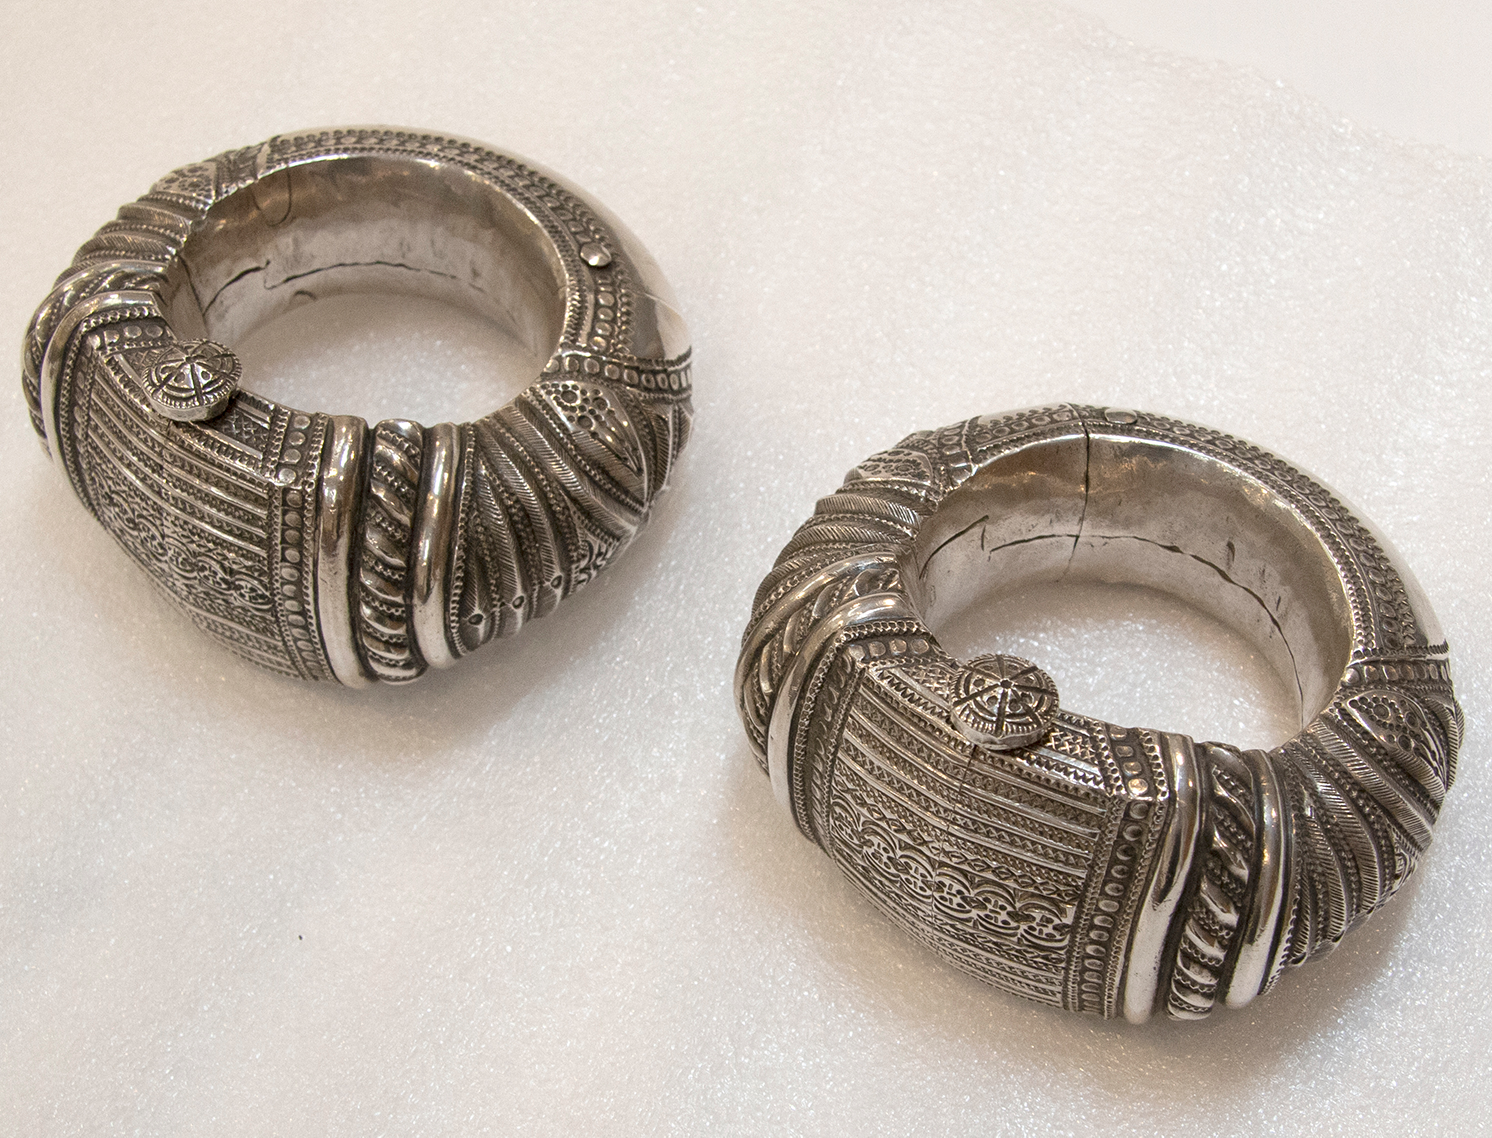 Pair of thick silver anklets from Oman or Zanzibar. They are decorated with textures that resemble folded or embroidered fabric and have a button at the top that serves as a clasp to close them around the ankle of the wearer.